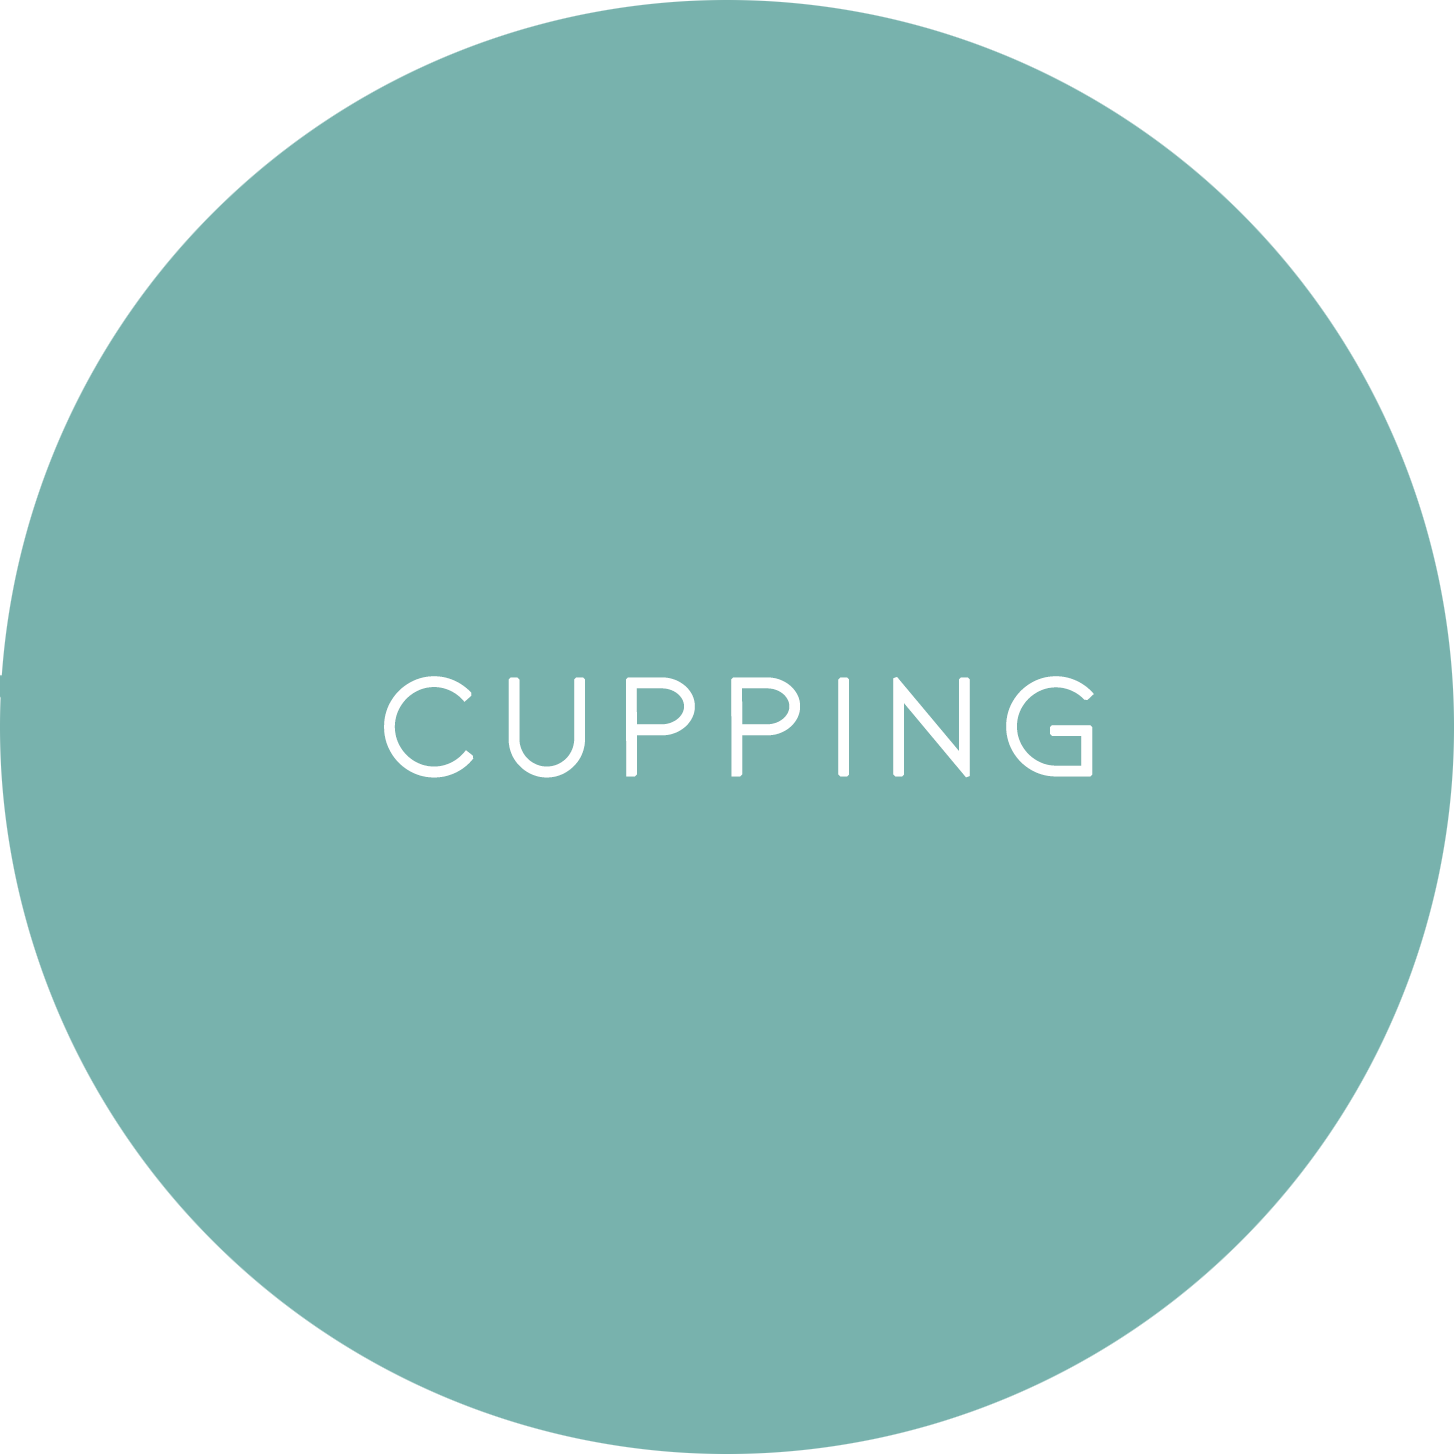 cupping icon.png